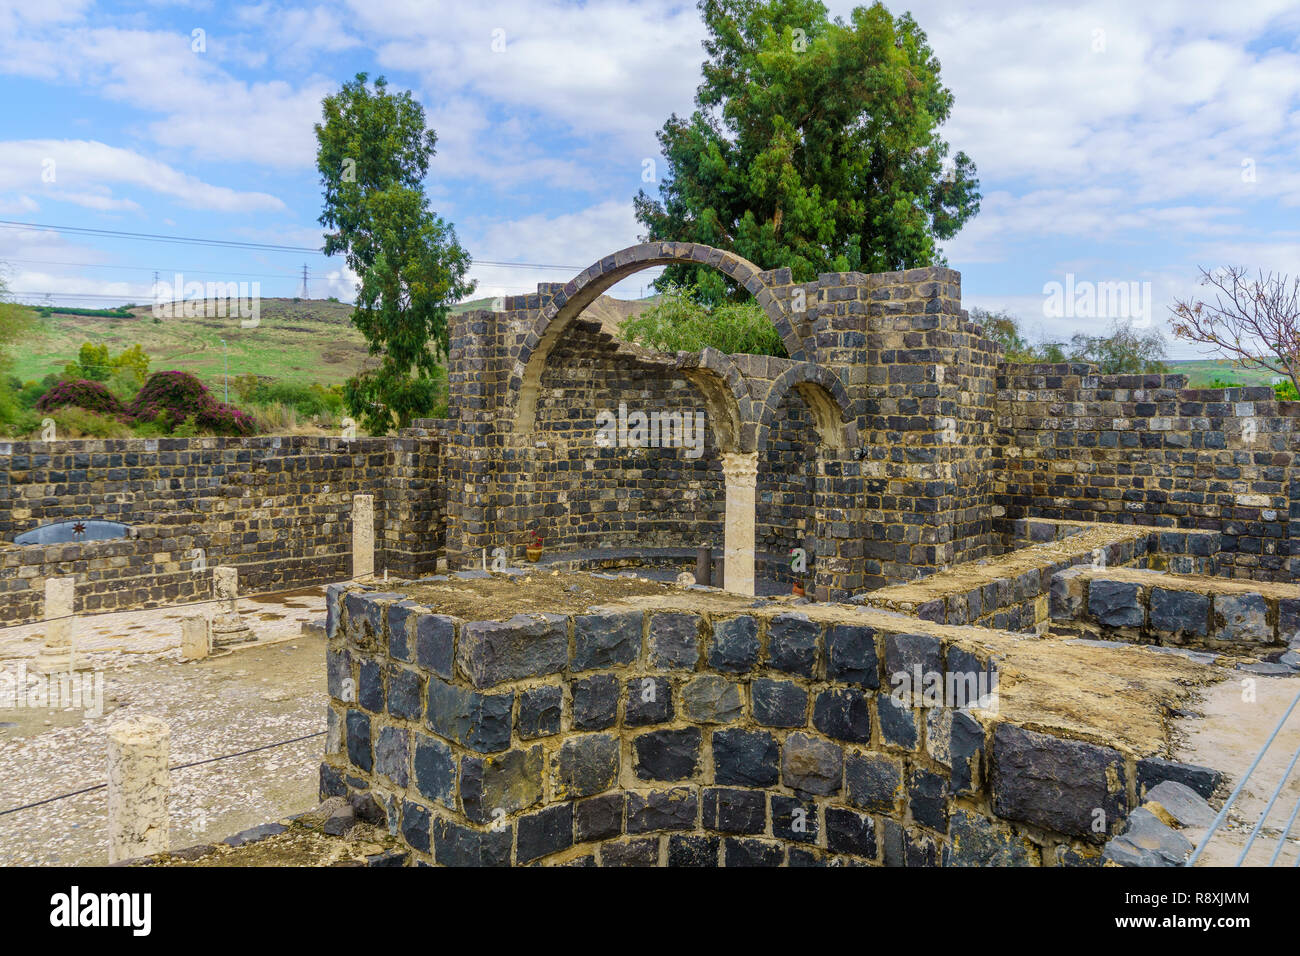 Remains of a Byzantine monastery, in Kursi National Park, Golan Heights, Northern Israel. Identified as Gergesa (Miracle of the Swine) - Stock Image